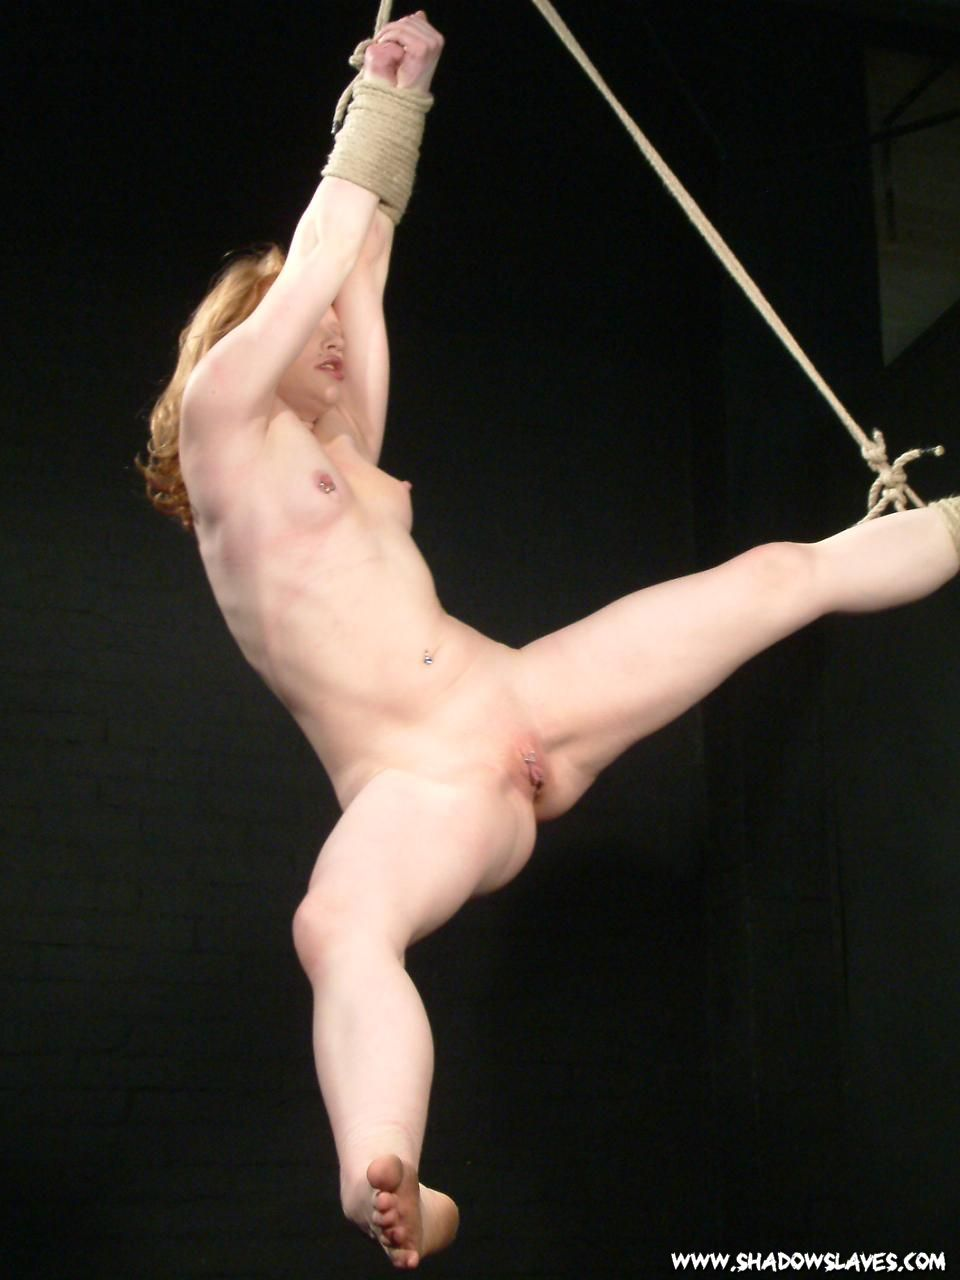 Girls full suspension bondage these girl's